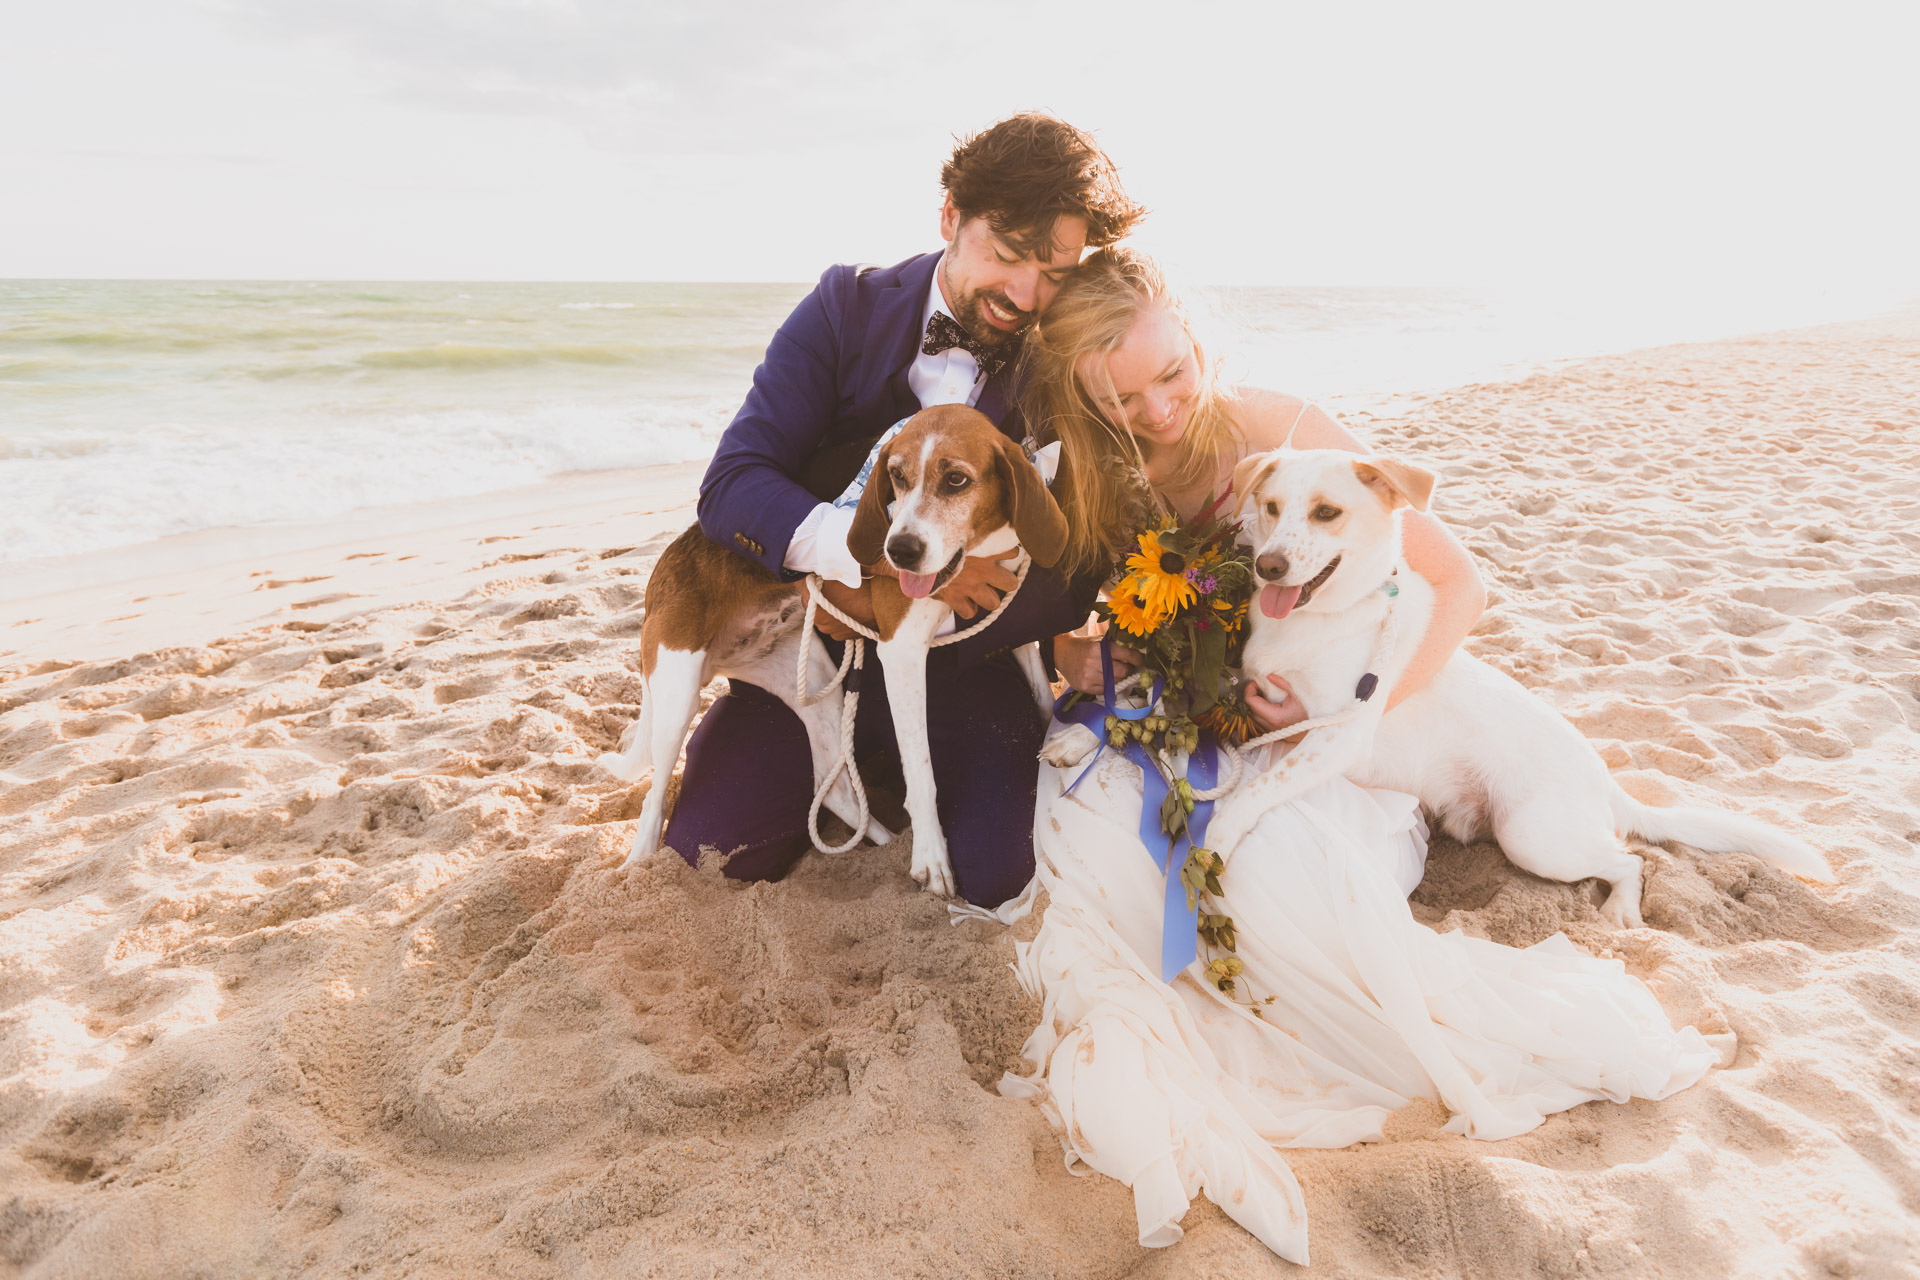 MA Beach Wedding Couple Portrait with Dogs | like most days, the dogs added so much joy and happiness to the evening